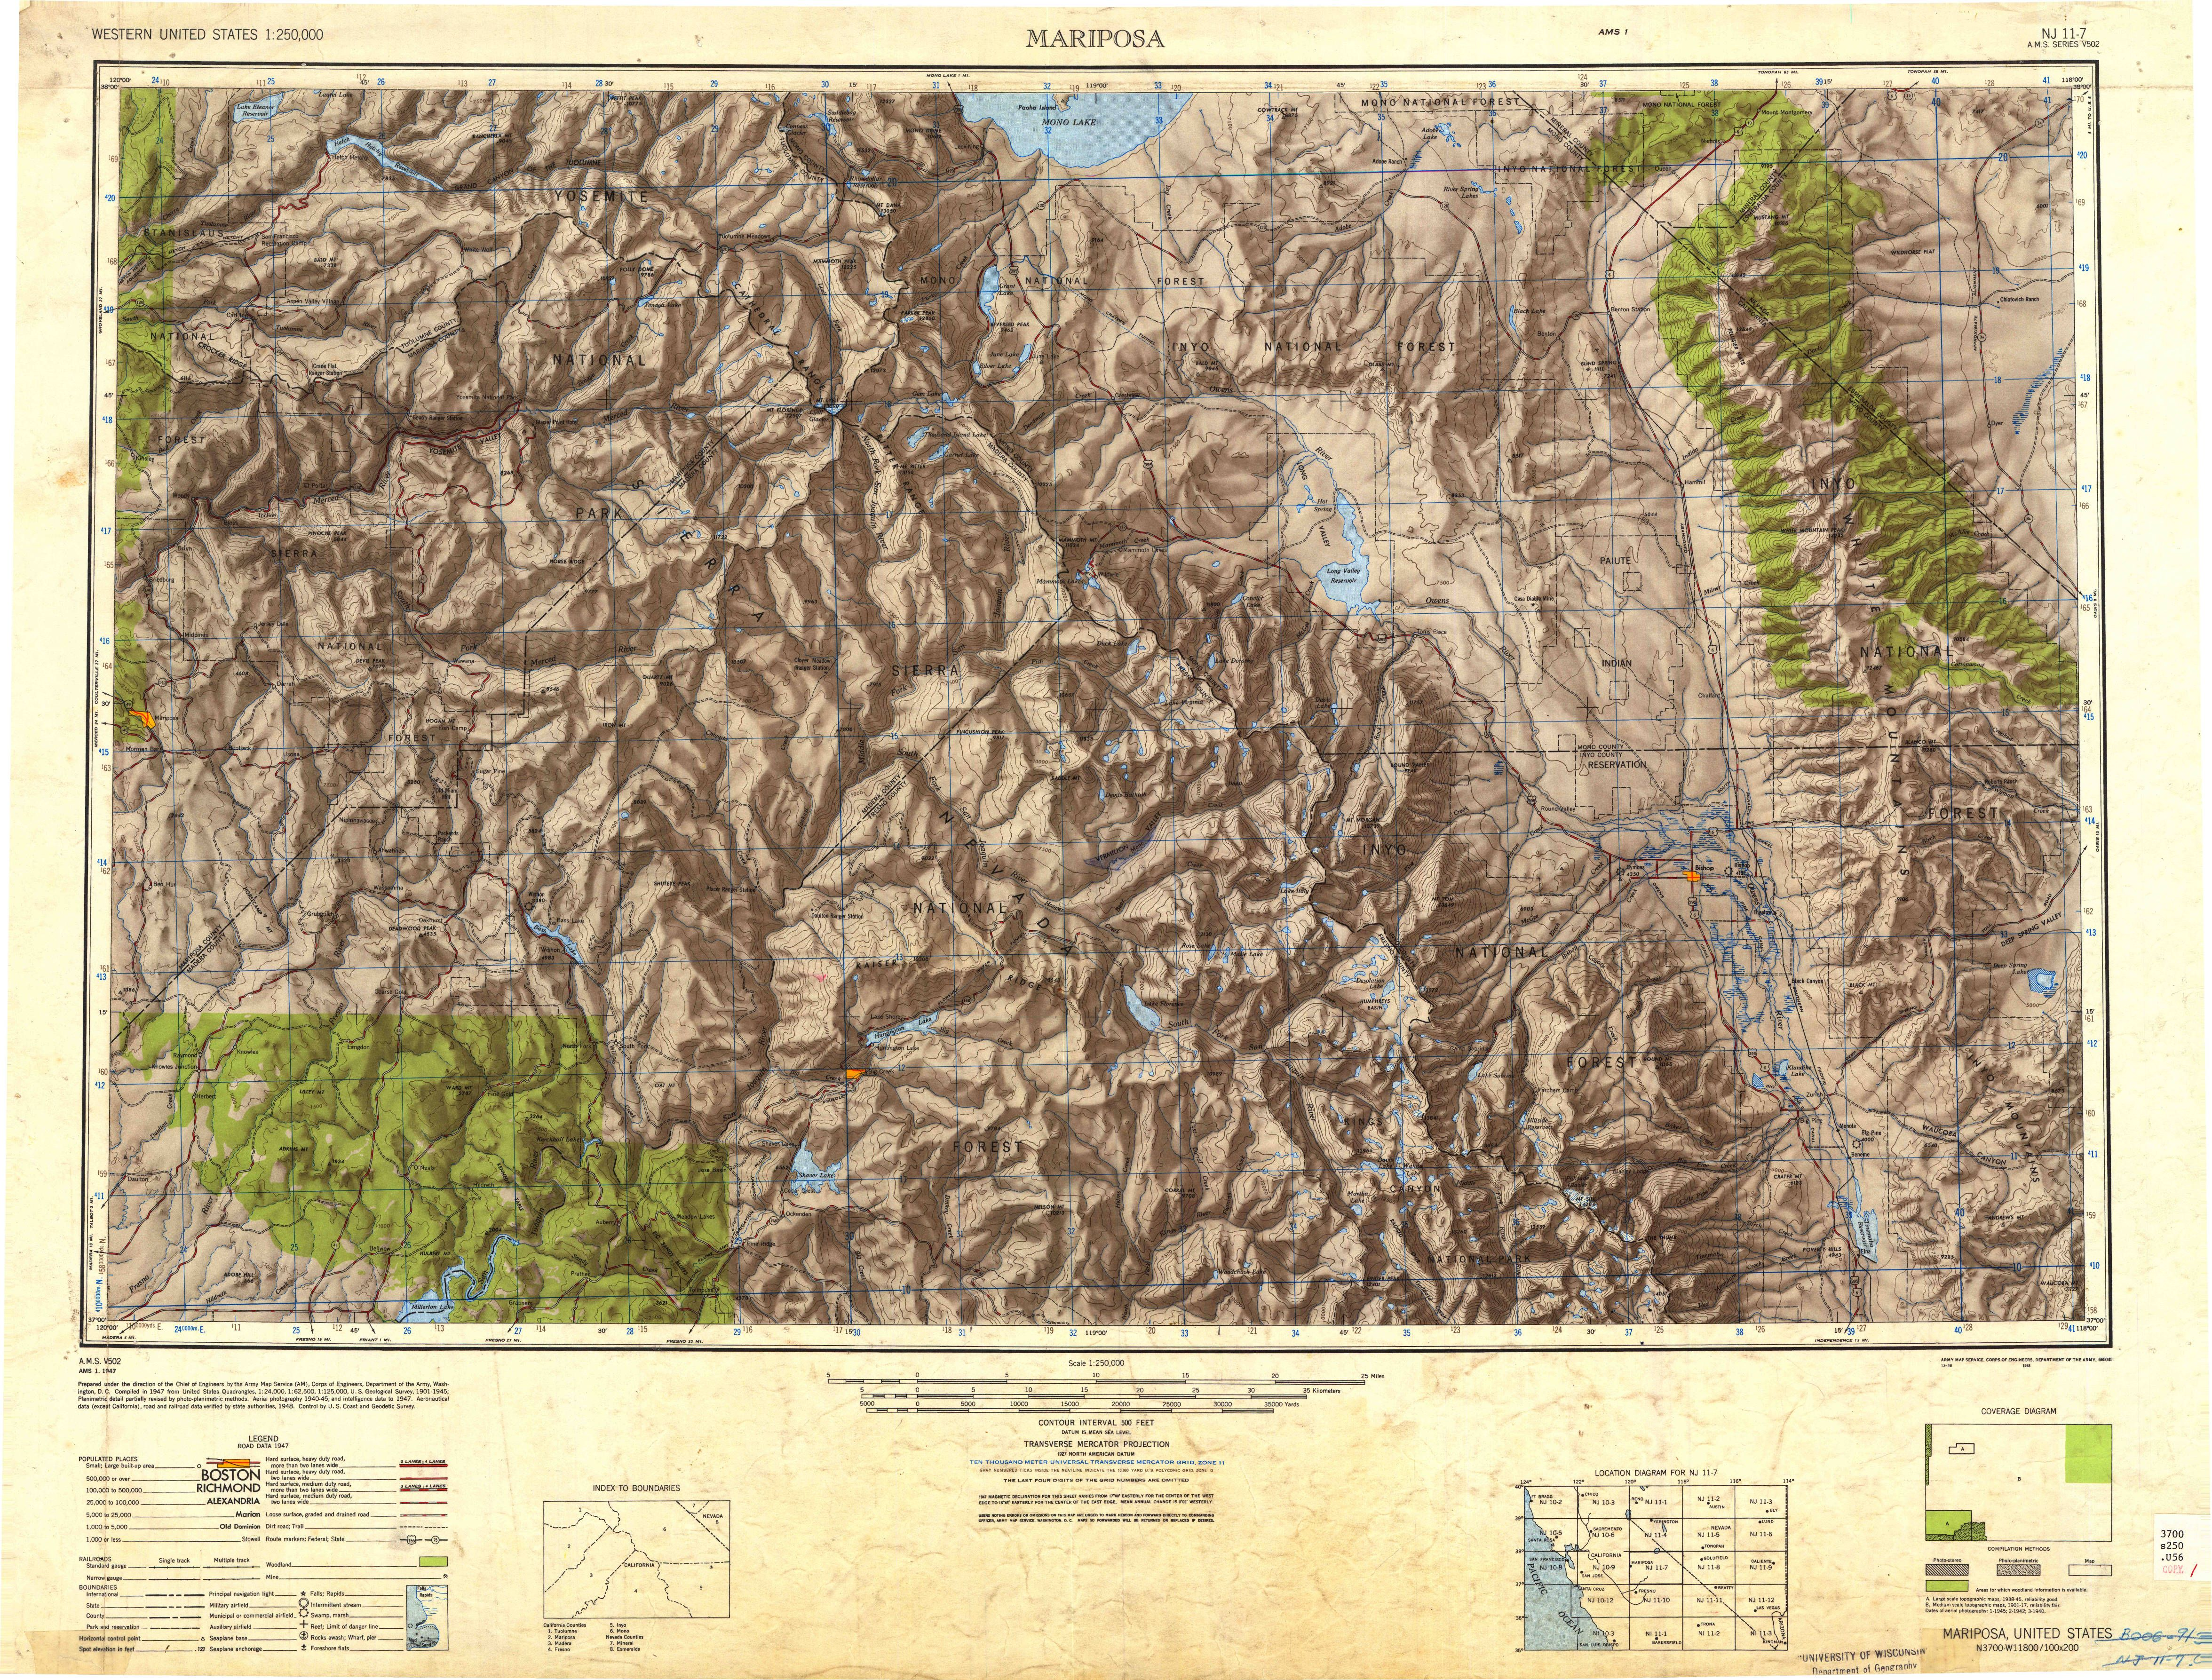 Mariposa CA—1947 Map from the USGS Historical Topographic Map